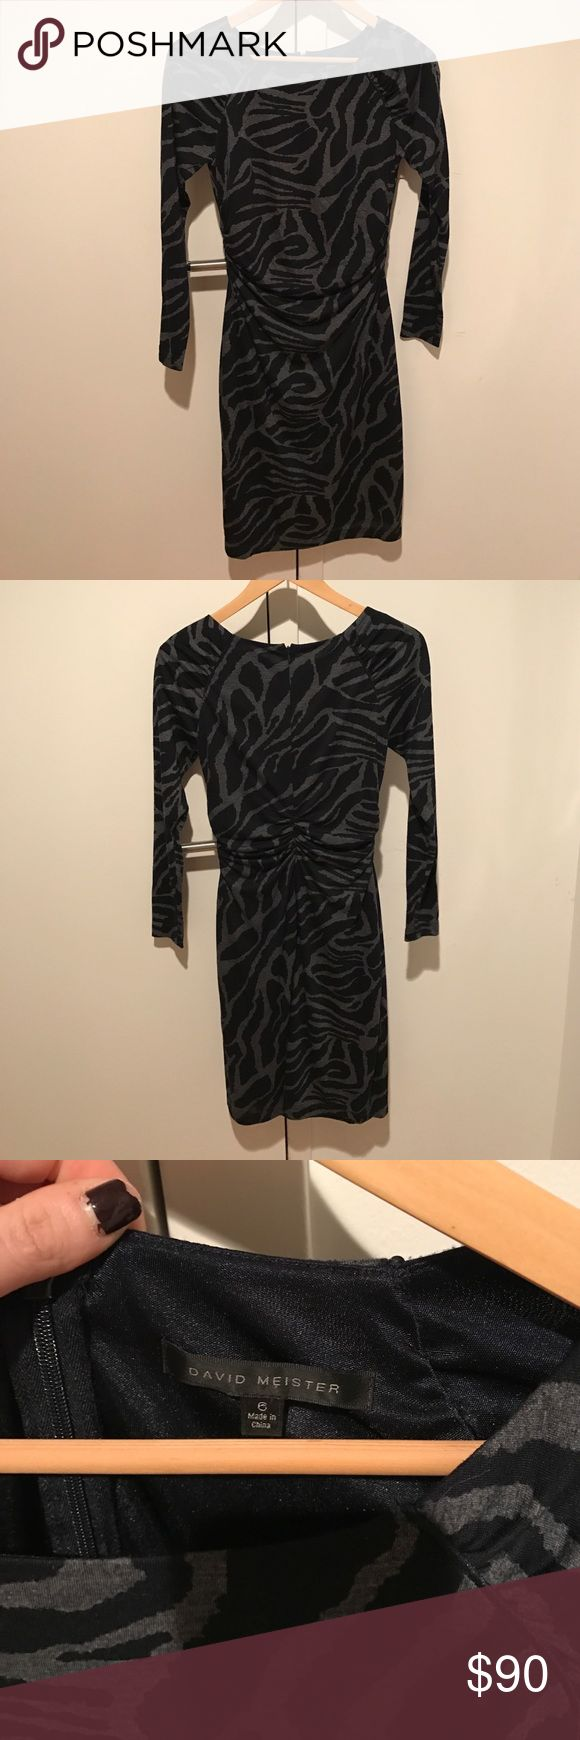 DAVID MEISTER dress Take the LBD up a notch with this gorgeous piece from David Meister. Barely worn and in fantastic condition! David Meister Dresses Long Sleeve